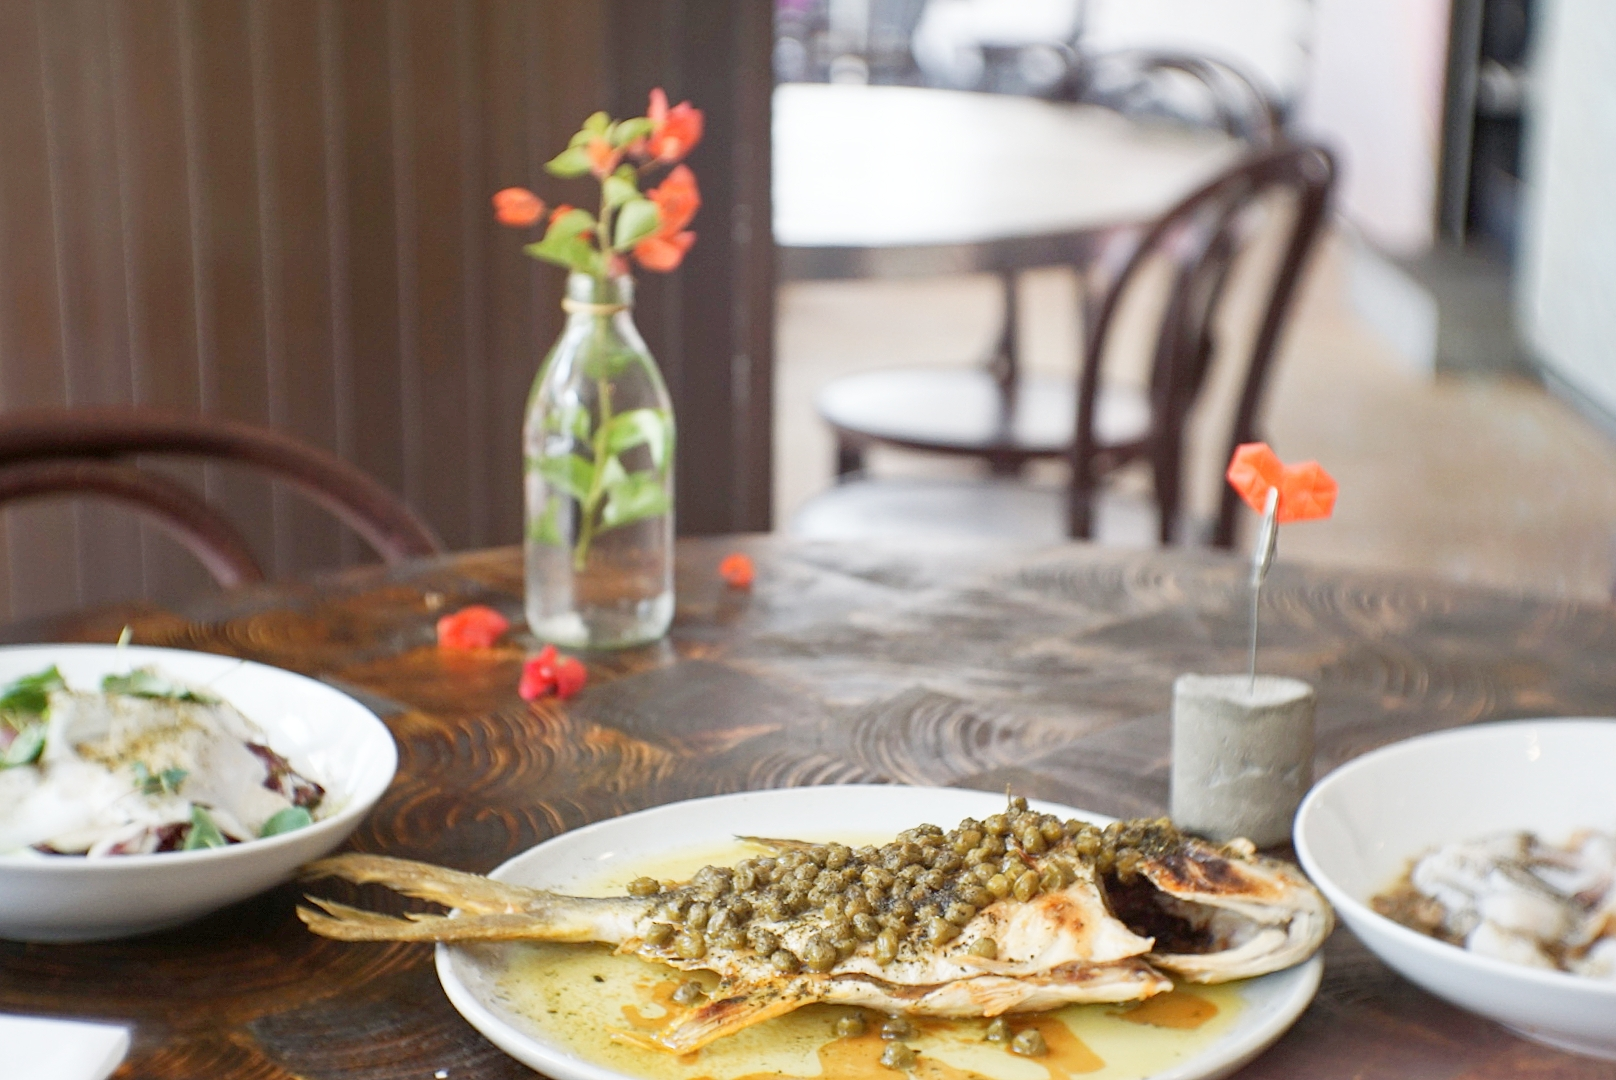 The golden pomfret was served together with local greens (to the left) and braised squid (to the right).